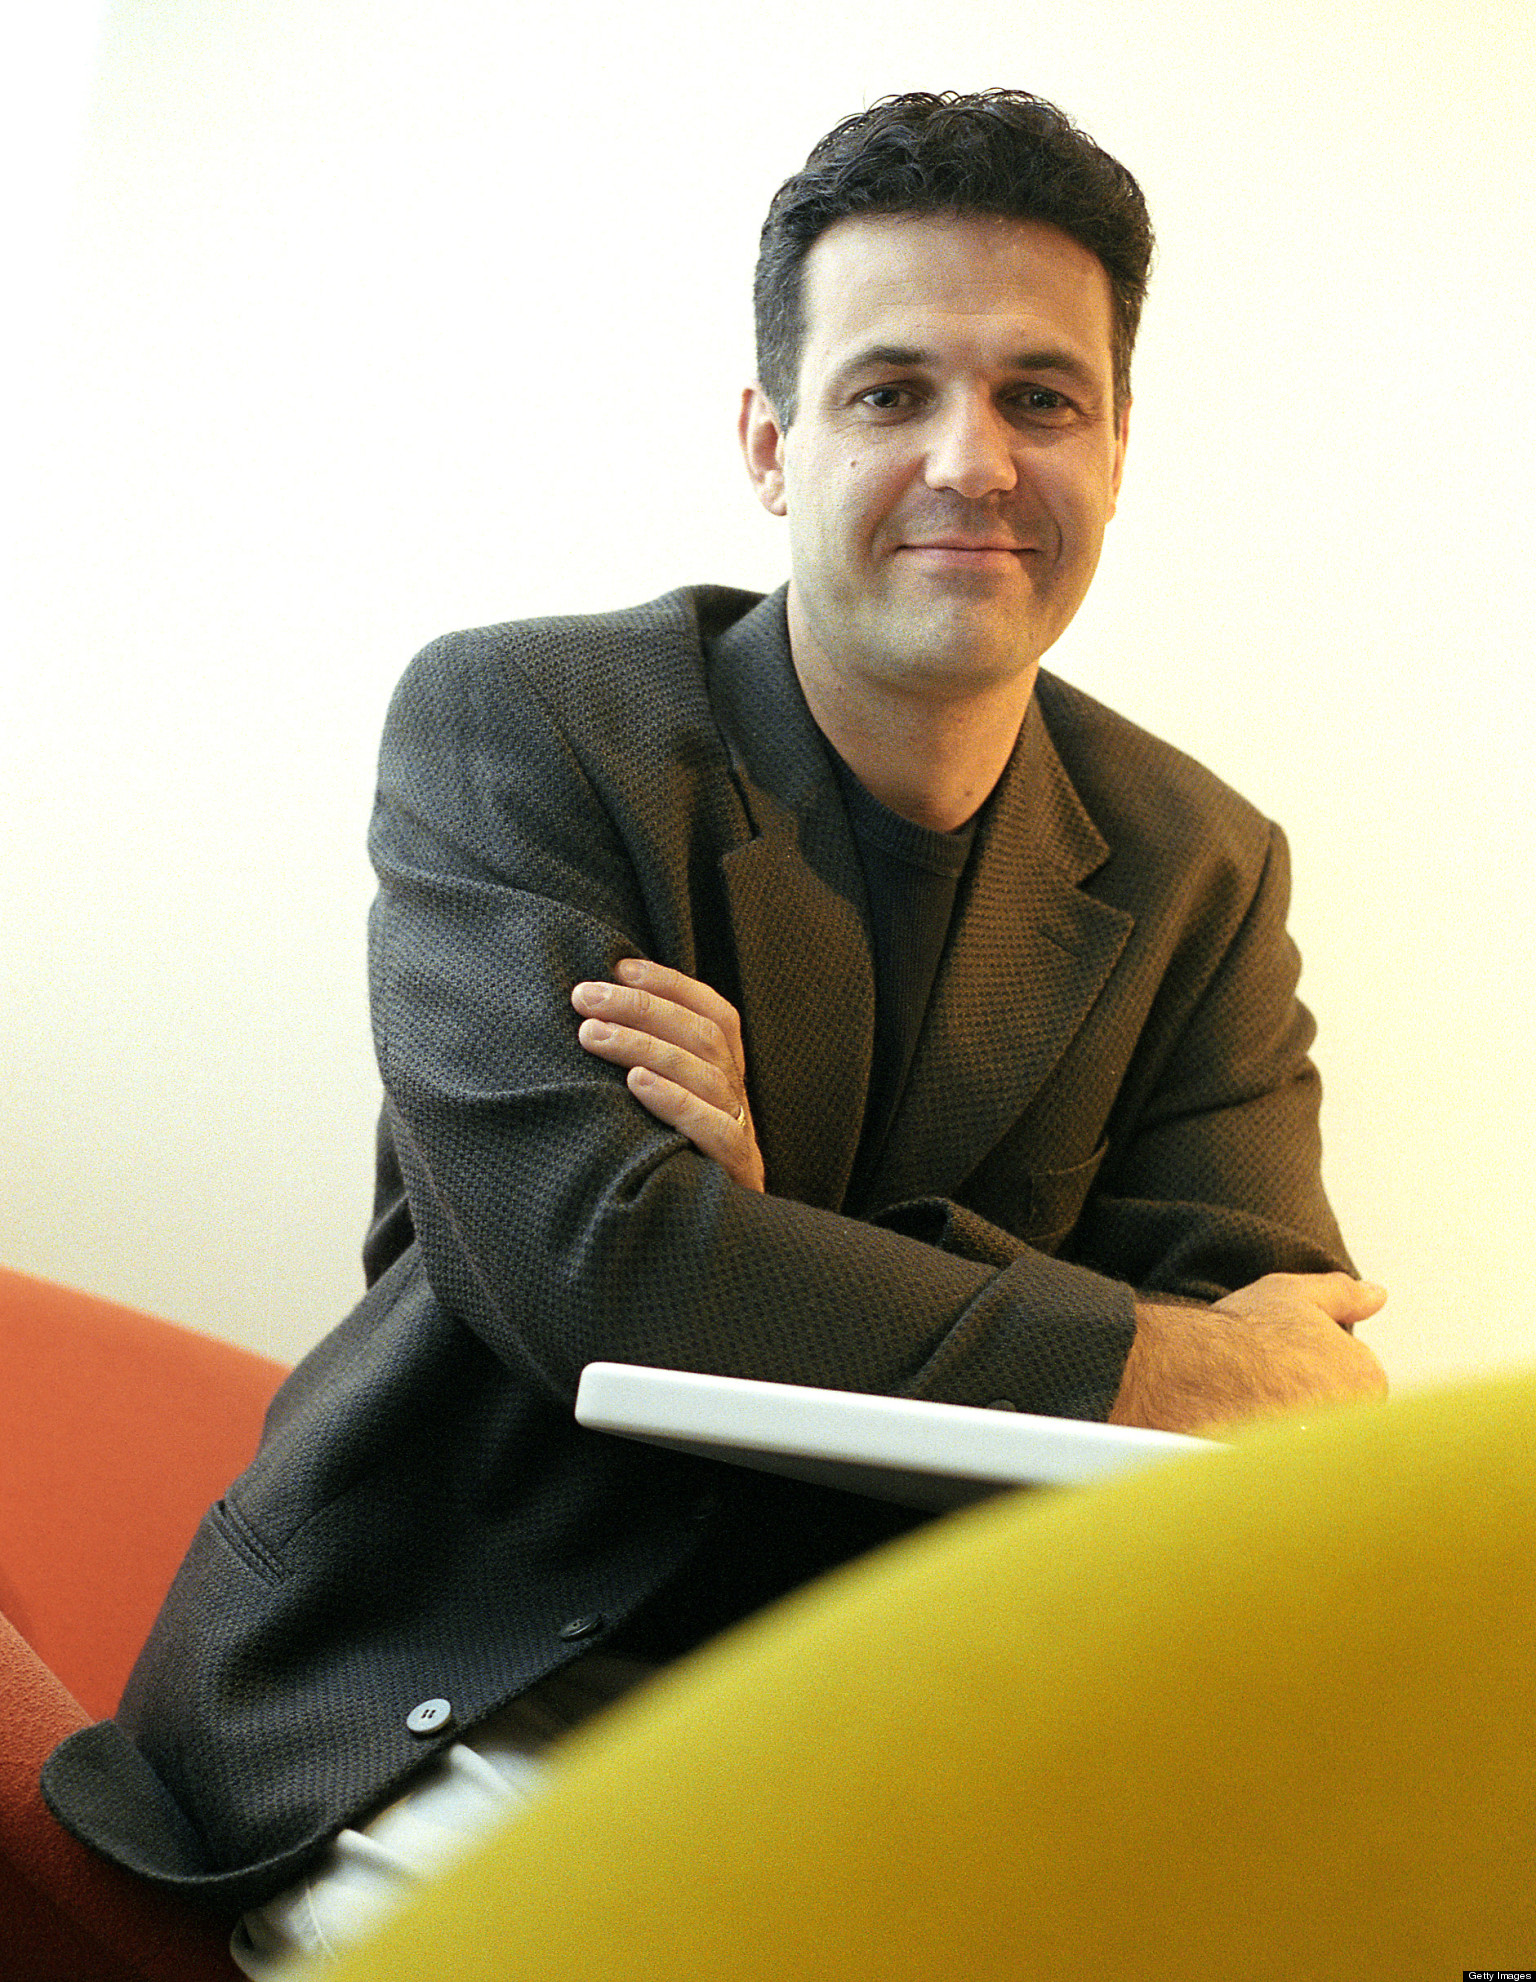 does khaled hosseinis writing matter Teaching 'the kite runner' with the new york times by amanda what about reading the kite runner makes tackling the sensitive subject matter worthwhile or even vital write a defense of the kite runner, addressed to parents and how does khaled hosseini.